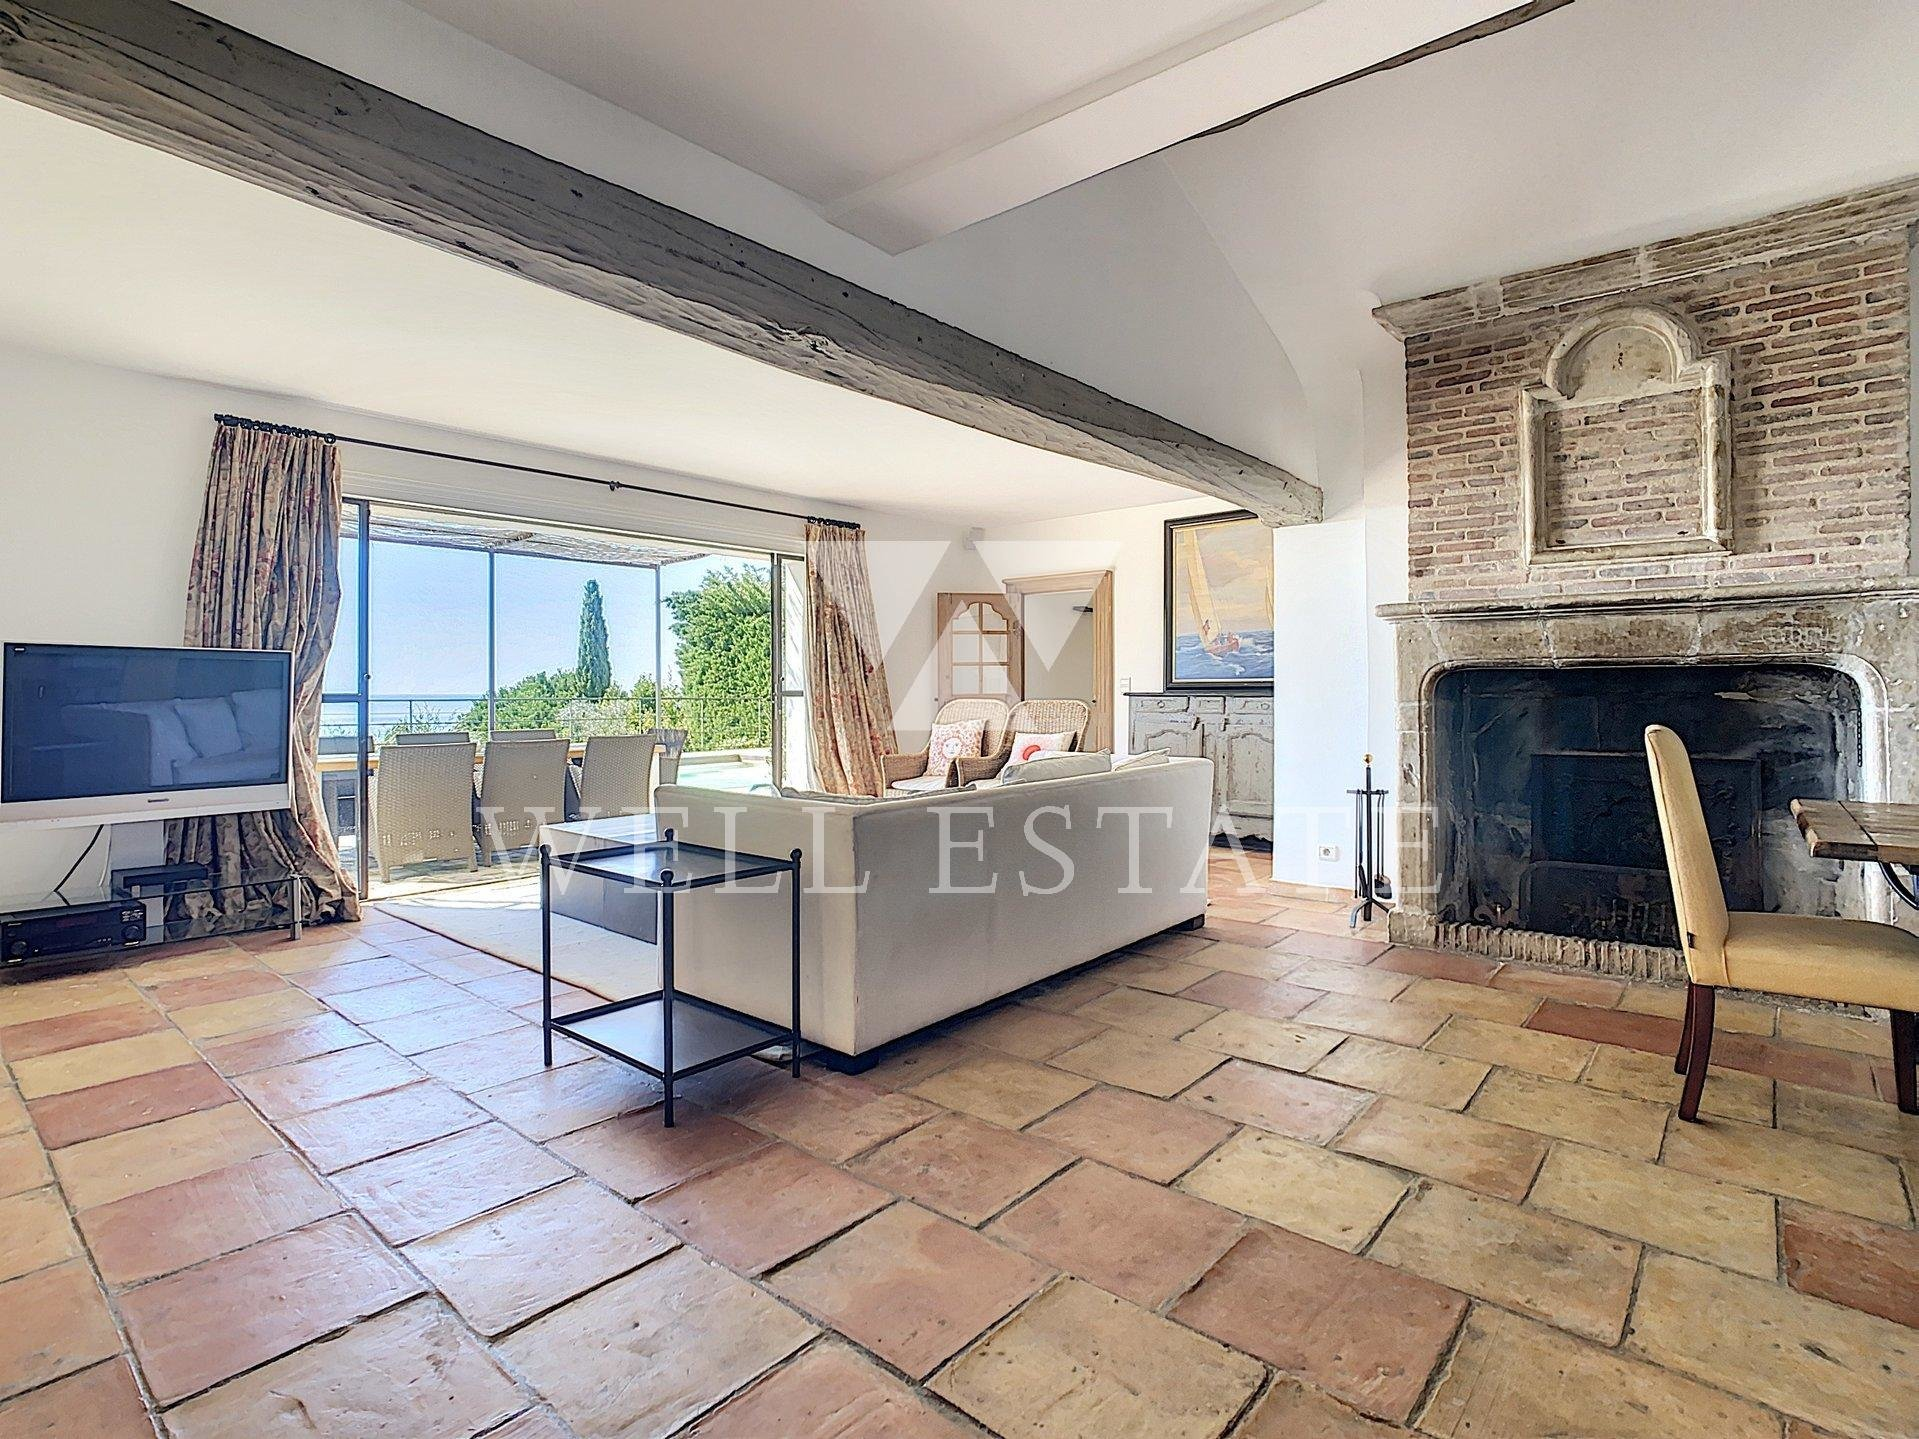 SUPER CANNES CHARMING VILLA 4 BEDROOMS PANORAMIC SEA VIEW SWIMMING POOL